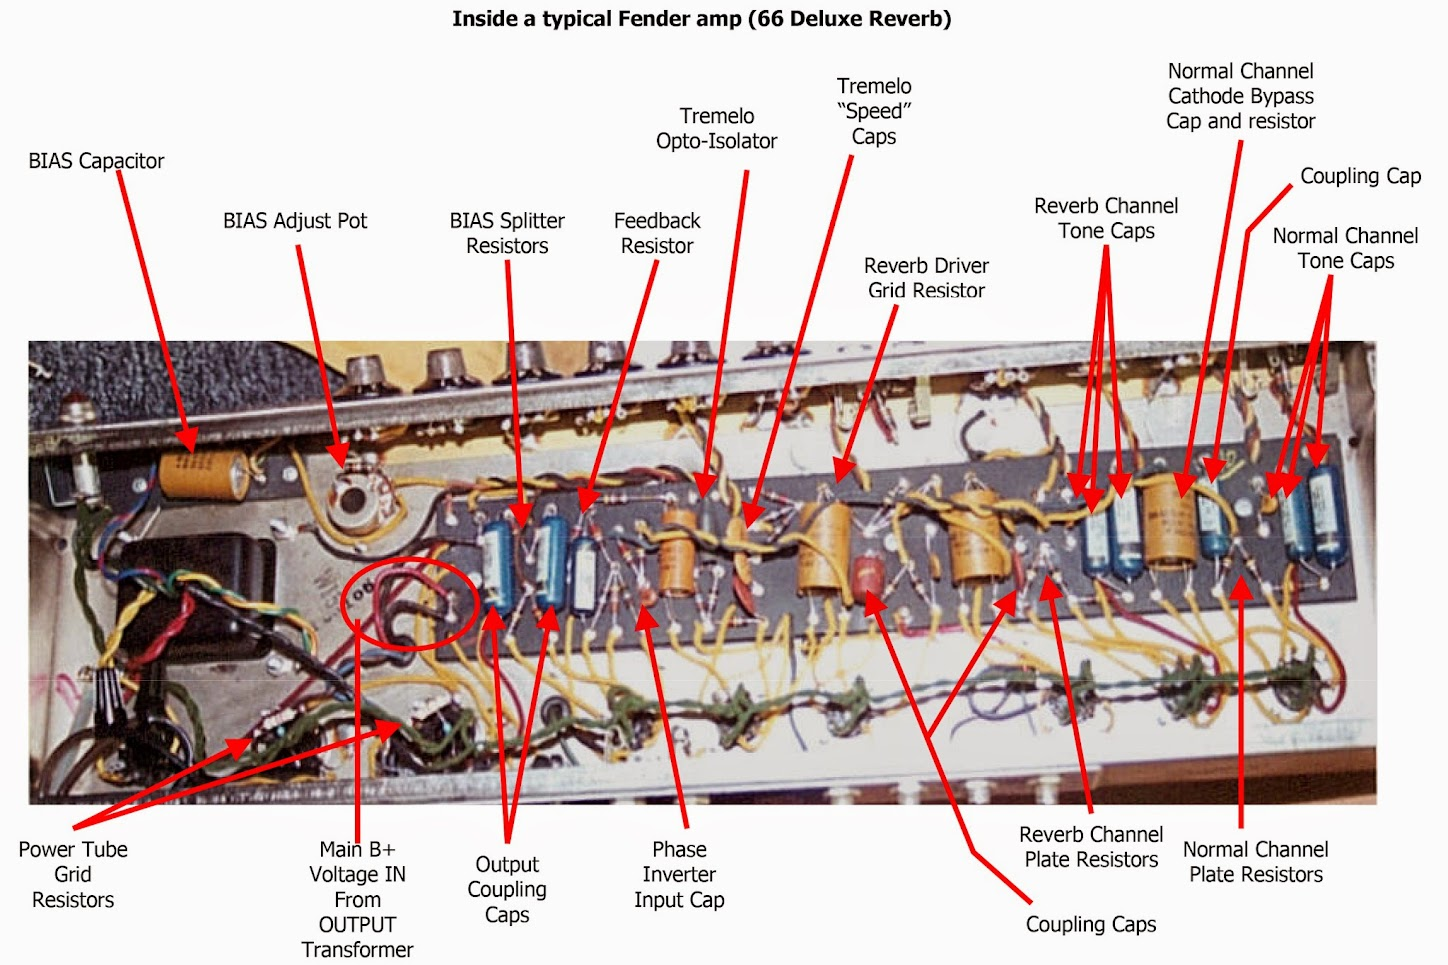 Wiring Diagram Help The Gear Page Library Power Tube Grid Resistors On Fenders There Are Usually 470 Ohm 1 Watt Affixed Here Amplifier Guts Terms And Locations